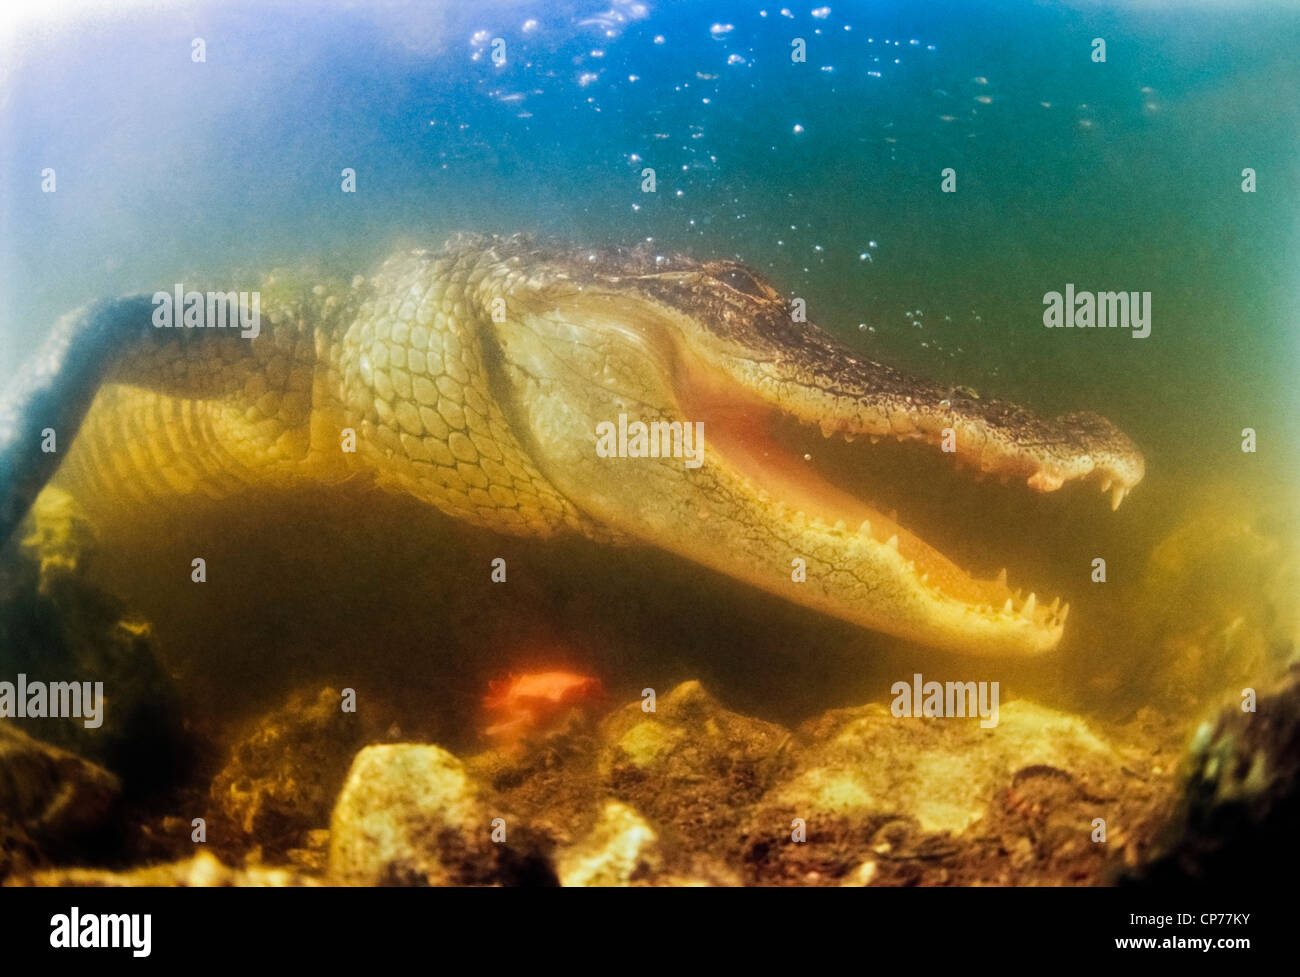 Alligator avec Jaws agape Photo Stock